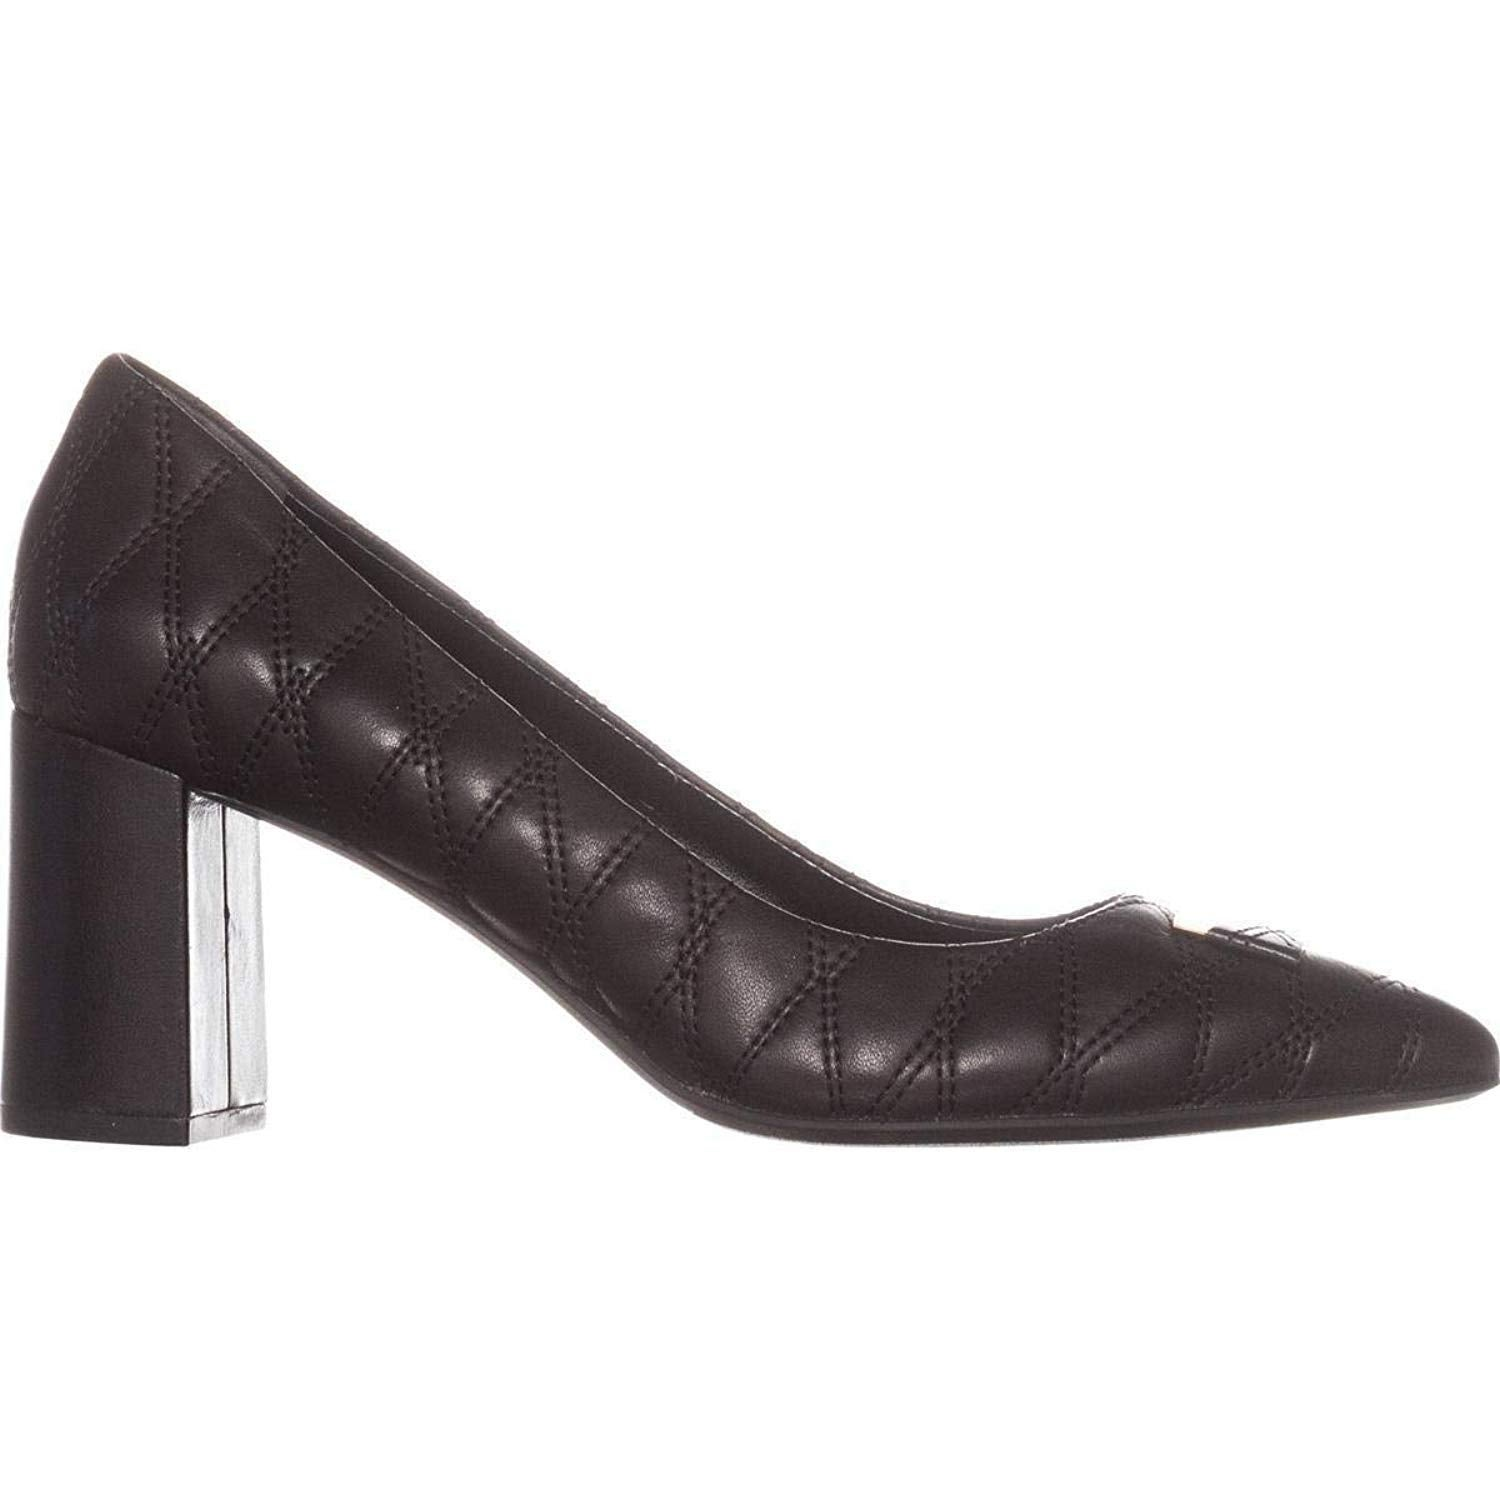 DKNY Womens Elia Leather Pointed Toe Classic Pumps